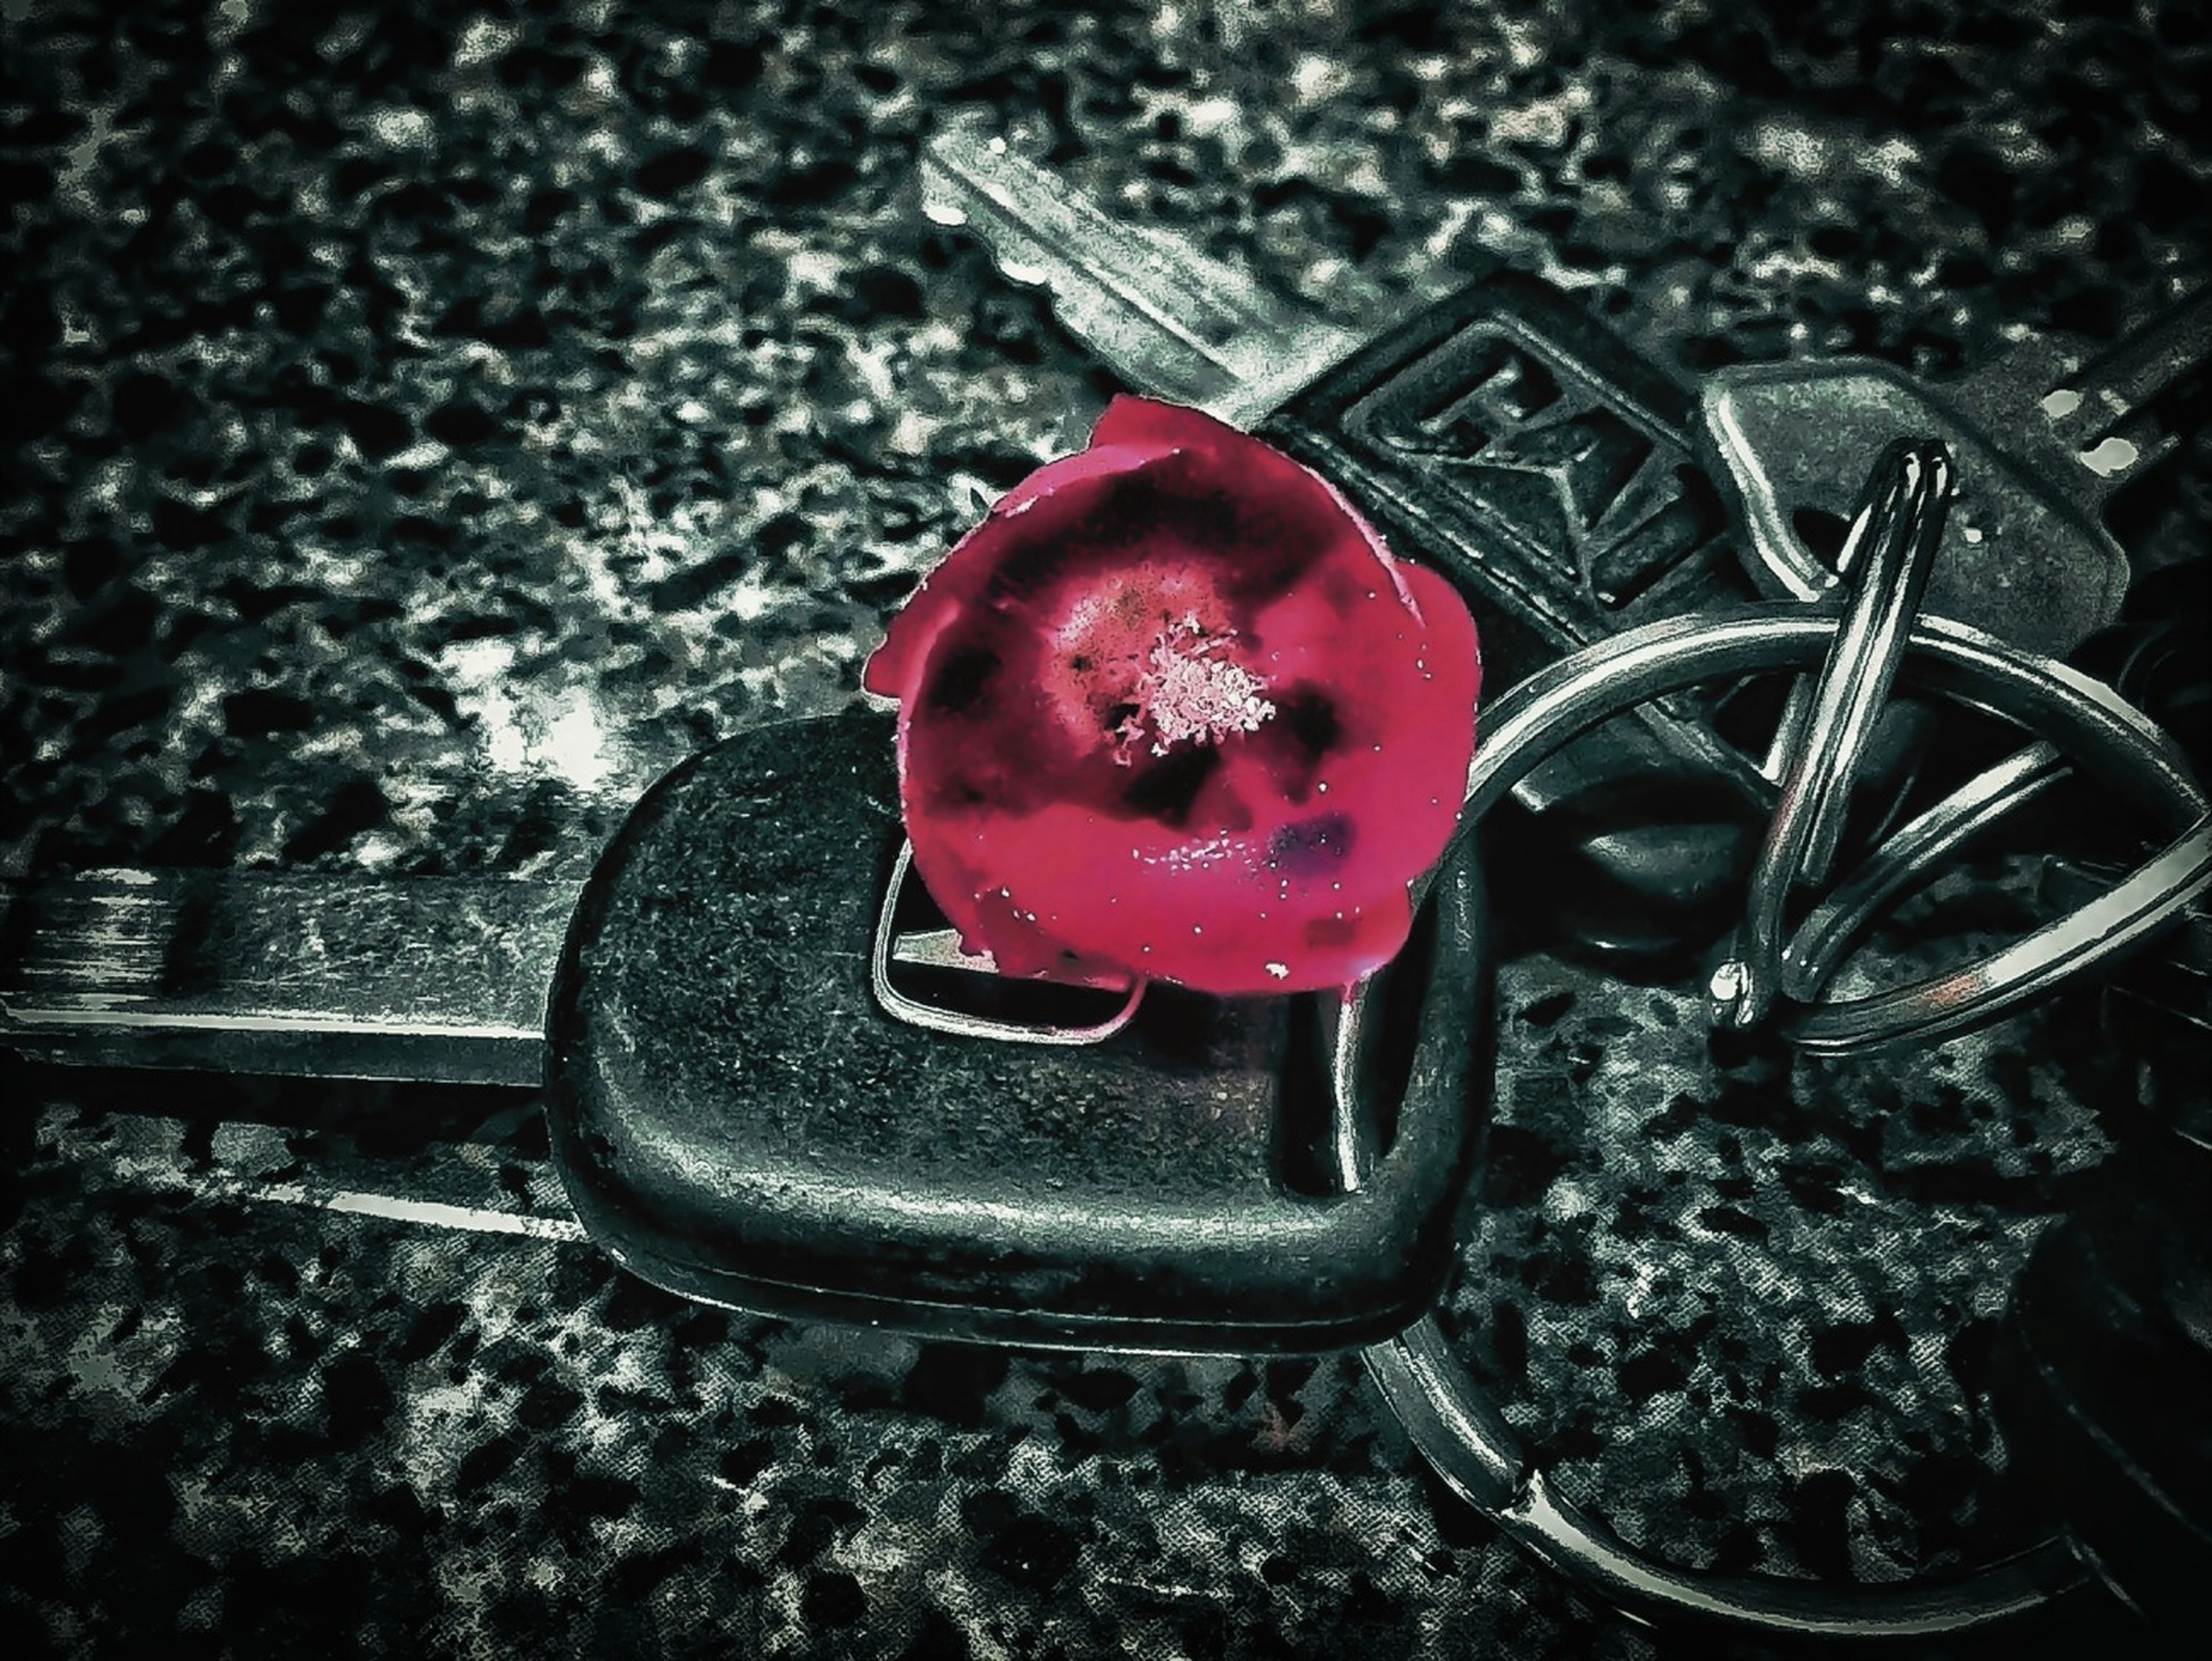 red, high angle view, close-up, freshness, still life, flower, land vehicle, focus on foreground, transportation, day, no people, food, pink color, outdoors, car, food and drink, metal, mode of transport, auto post production filter, strawberry